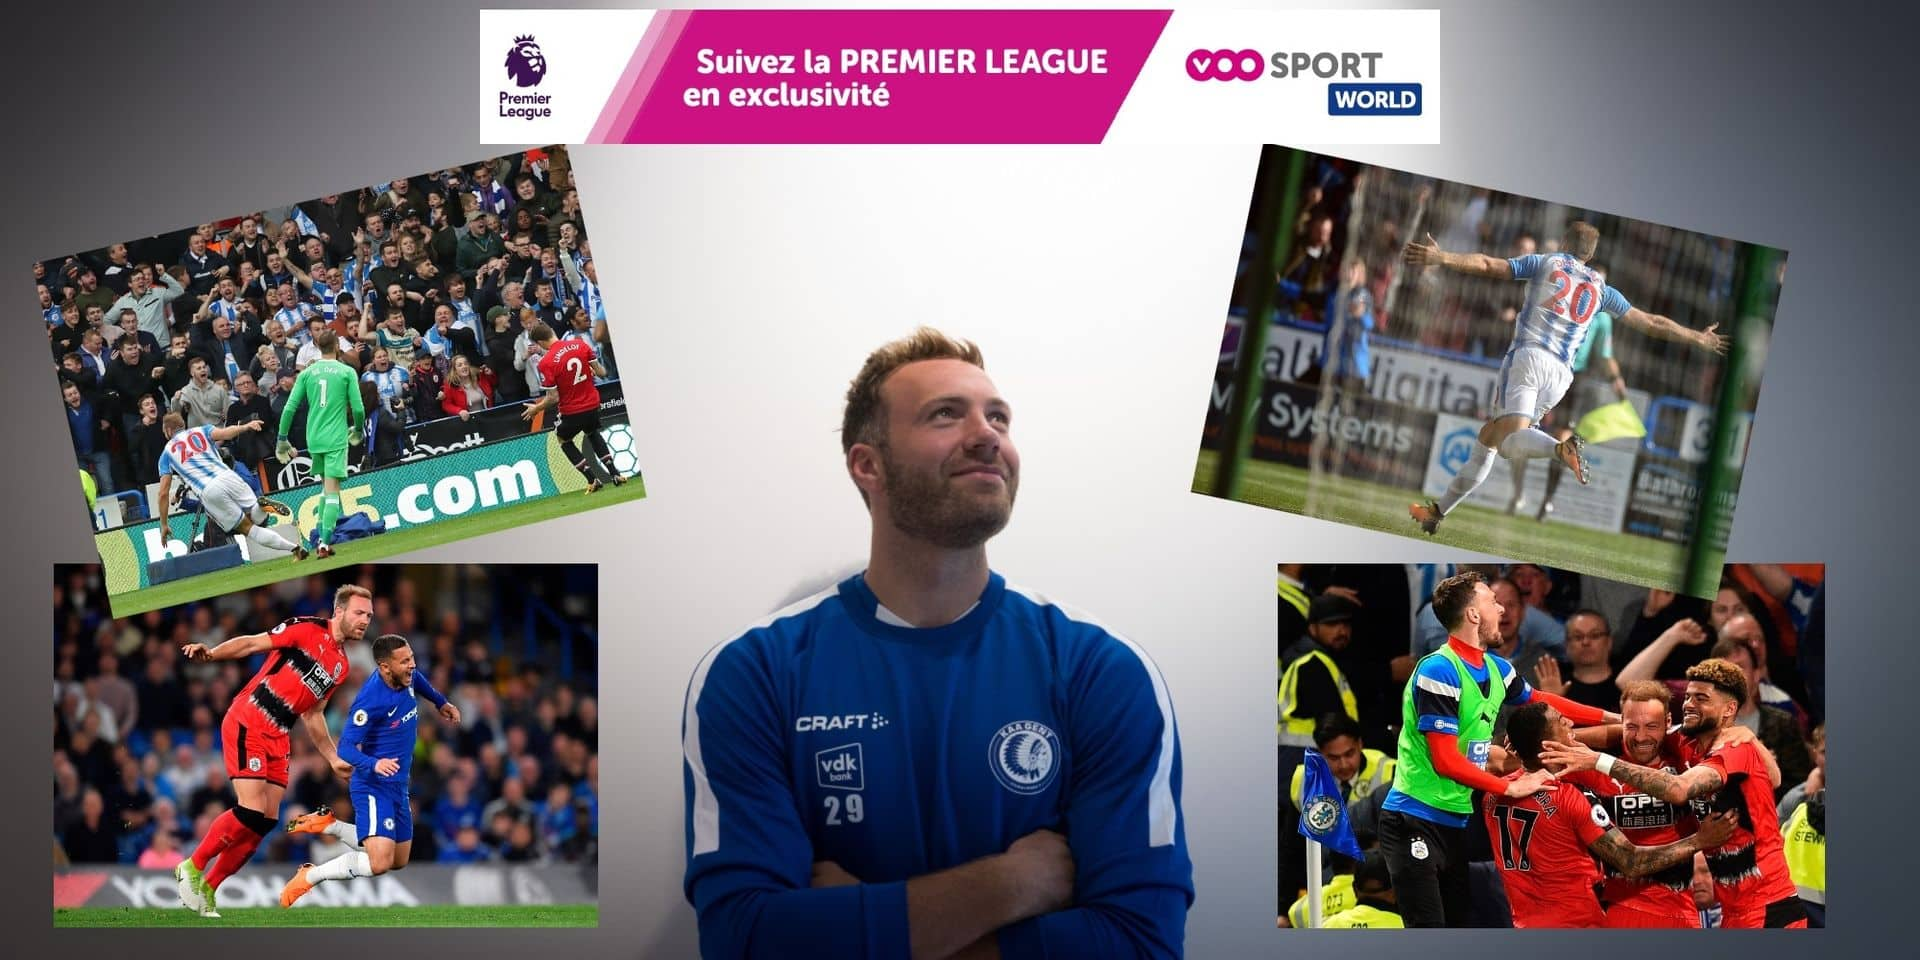 Les souvenirs de Premier League de Laurent Depoitre